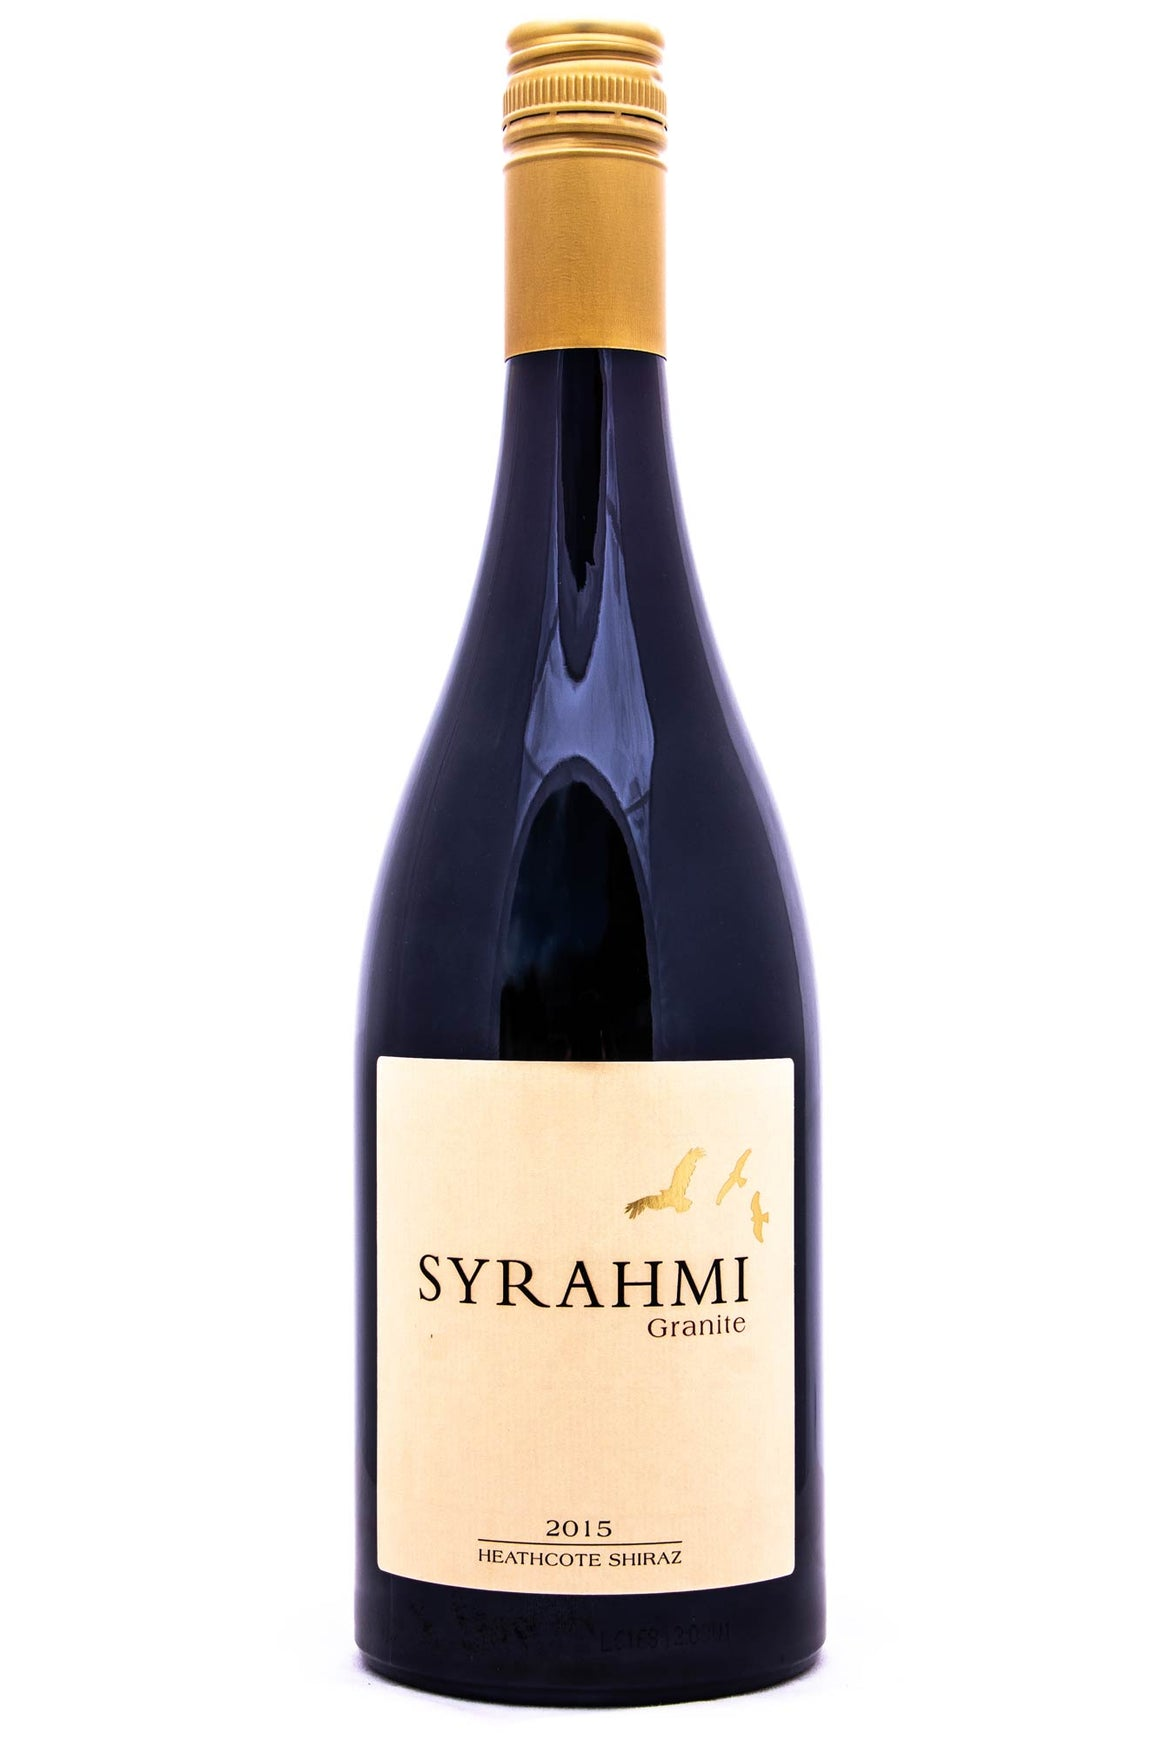 Syrahmi Granite Shiraz 2015